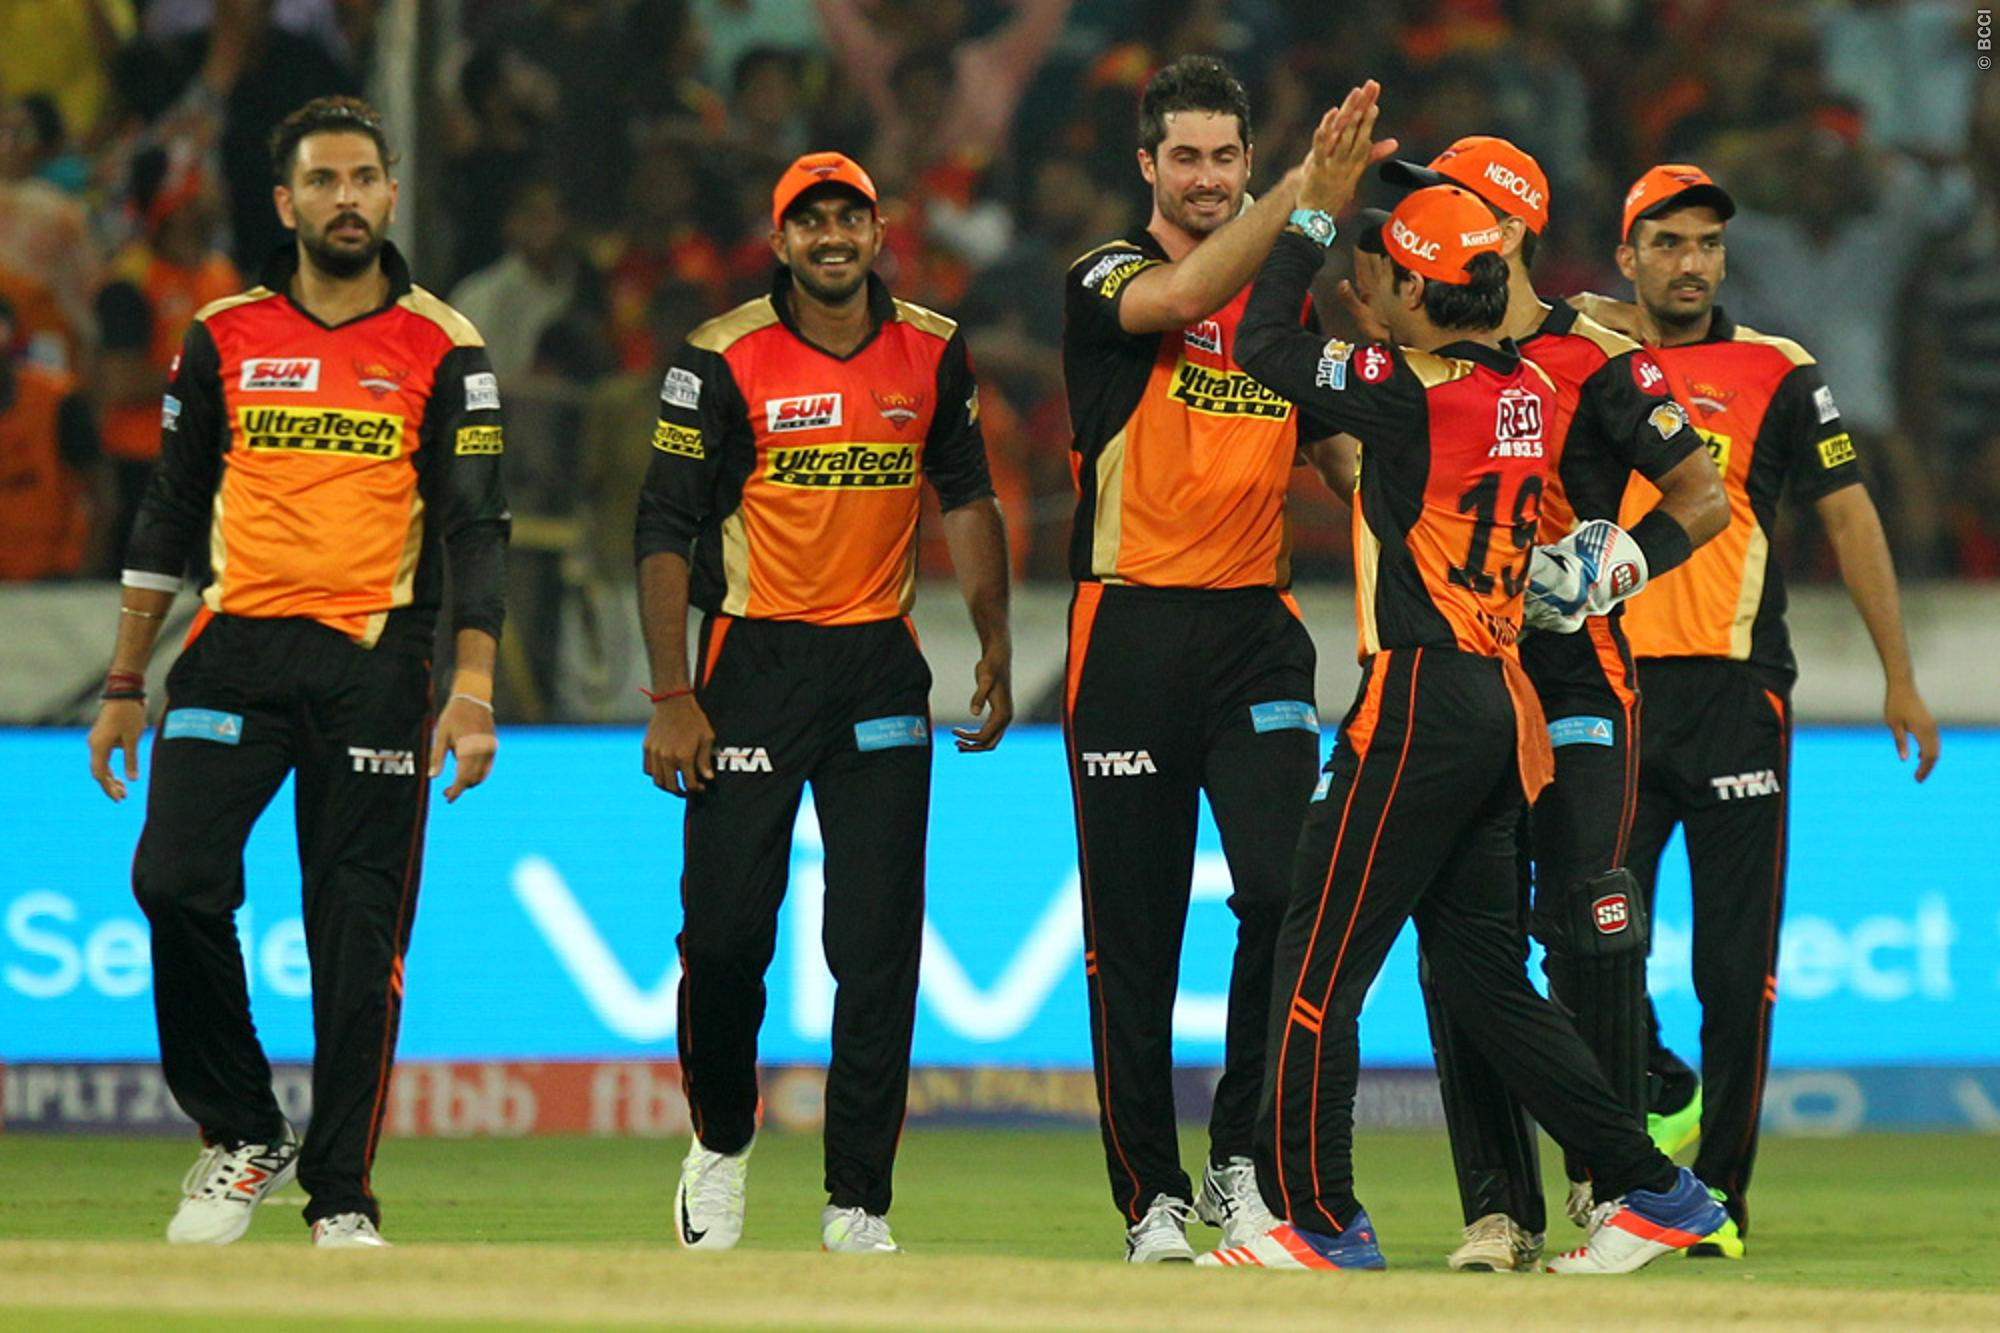 Yuvraj Singh Powers Sunrisers Hyderabad to win in IPL 2017 Opener